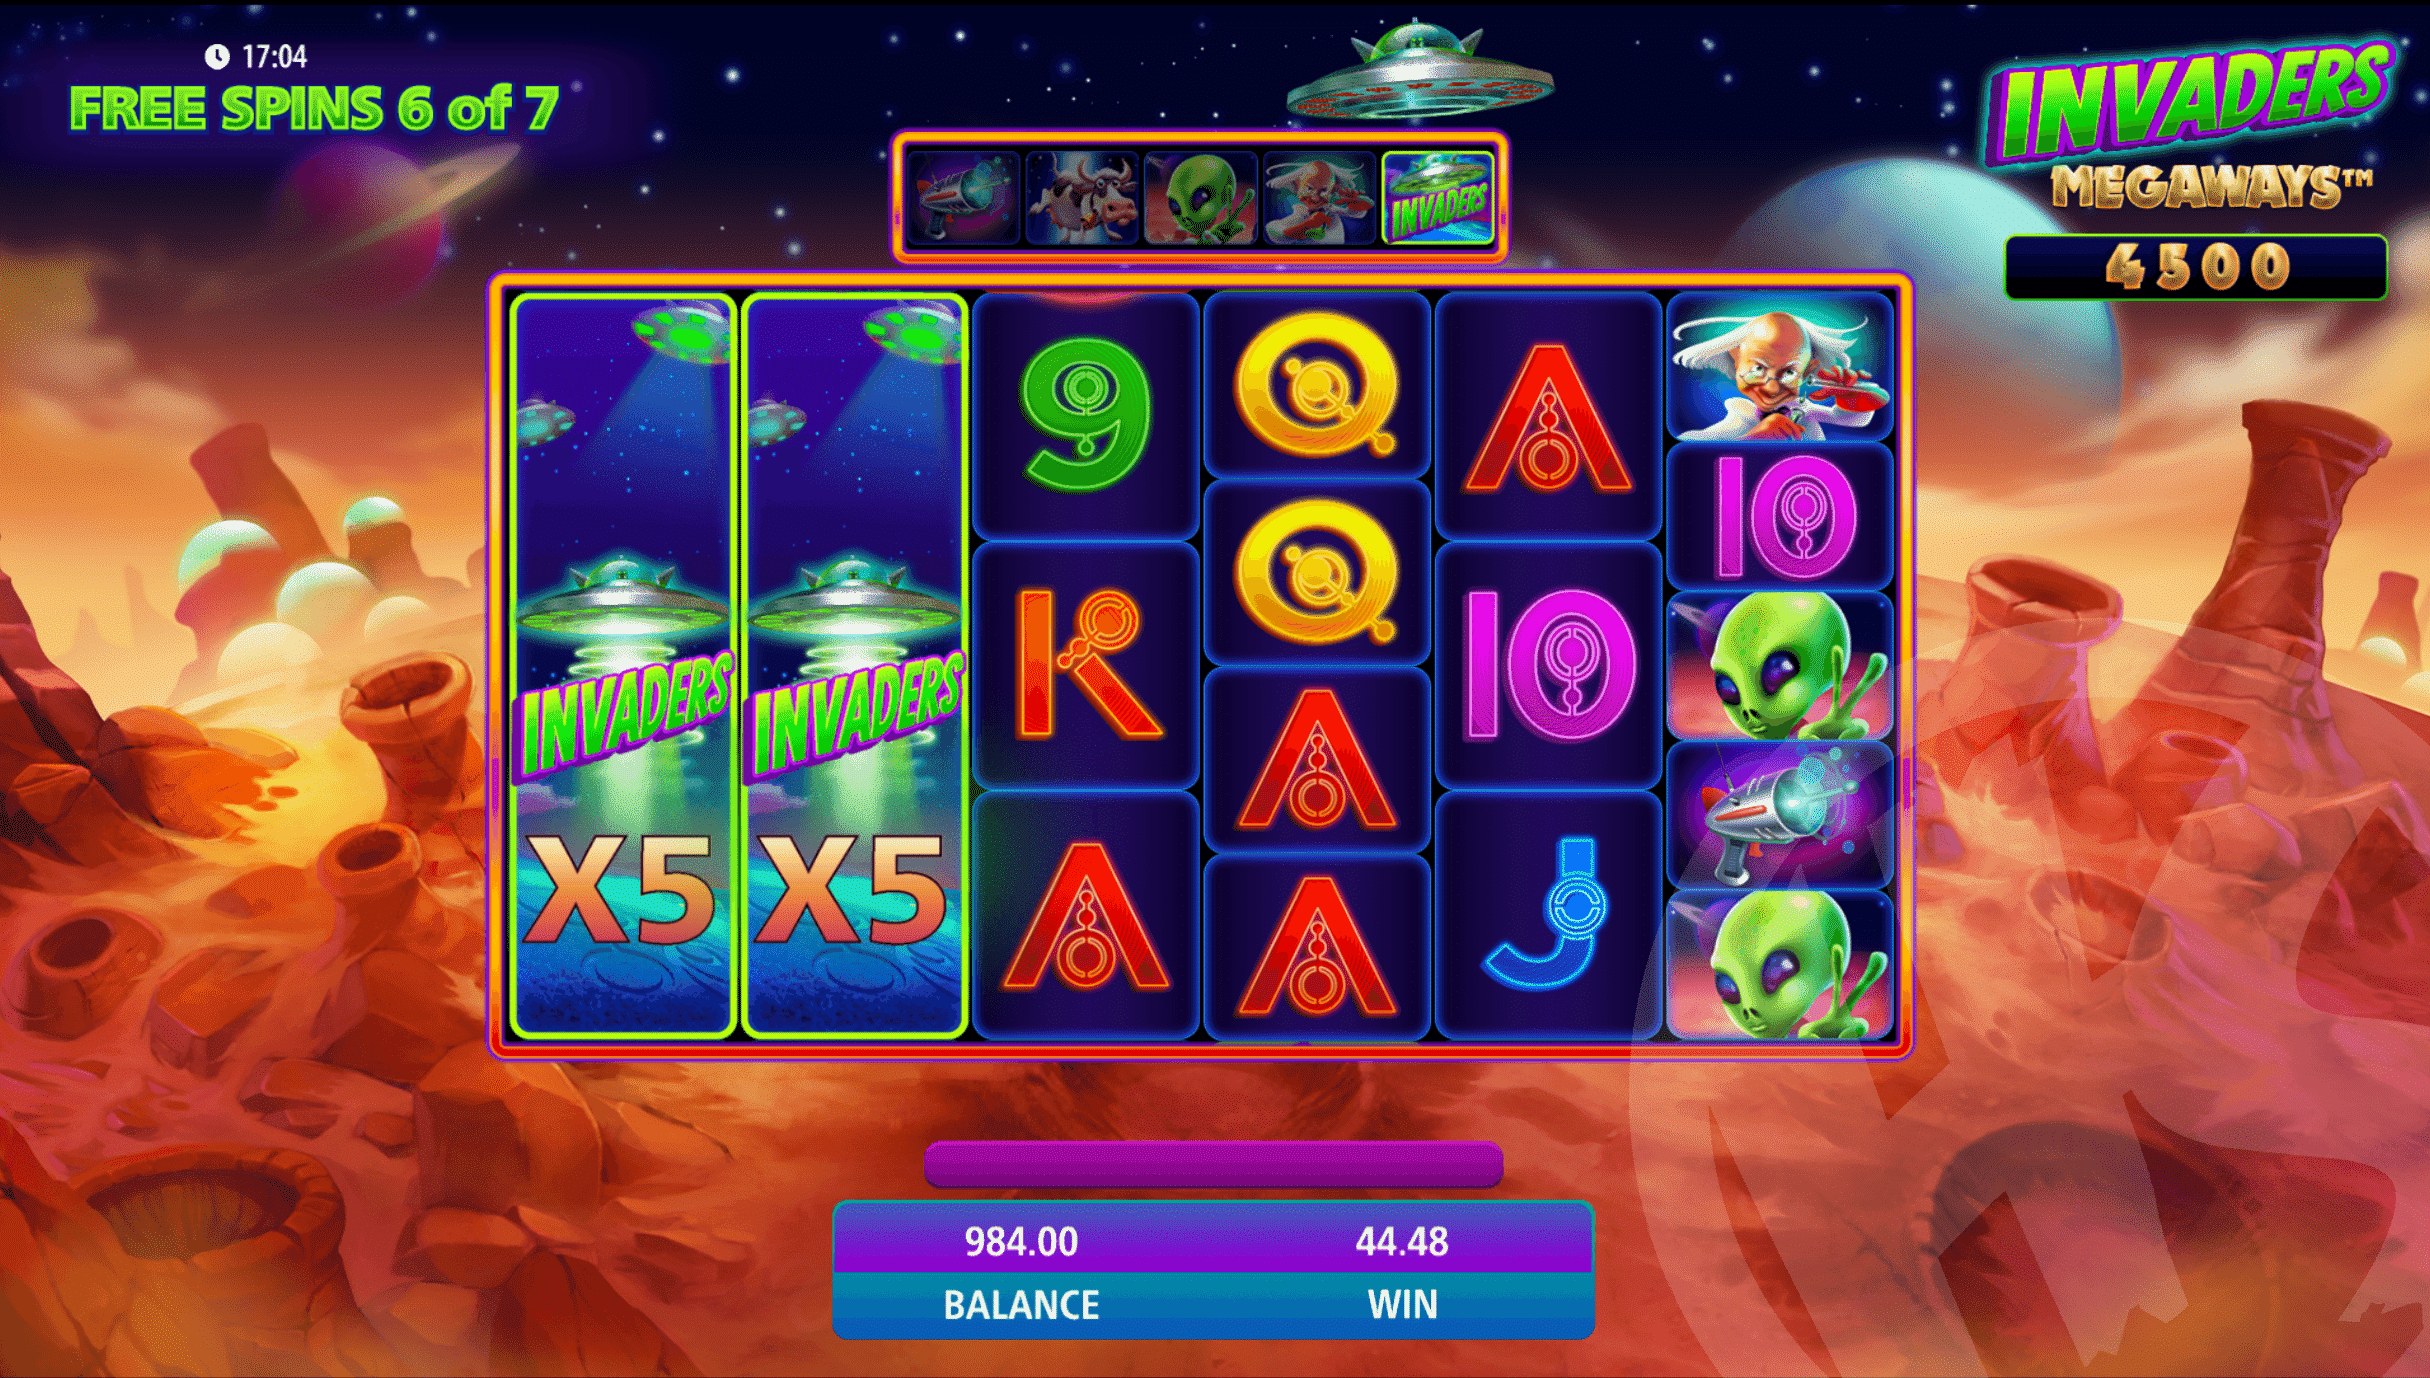 Invaders Logo Feature within Free Spins